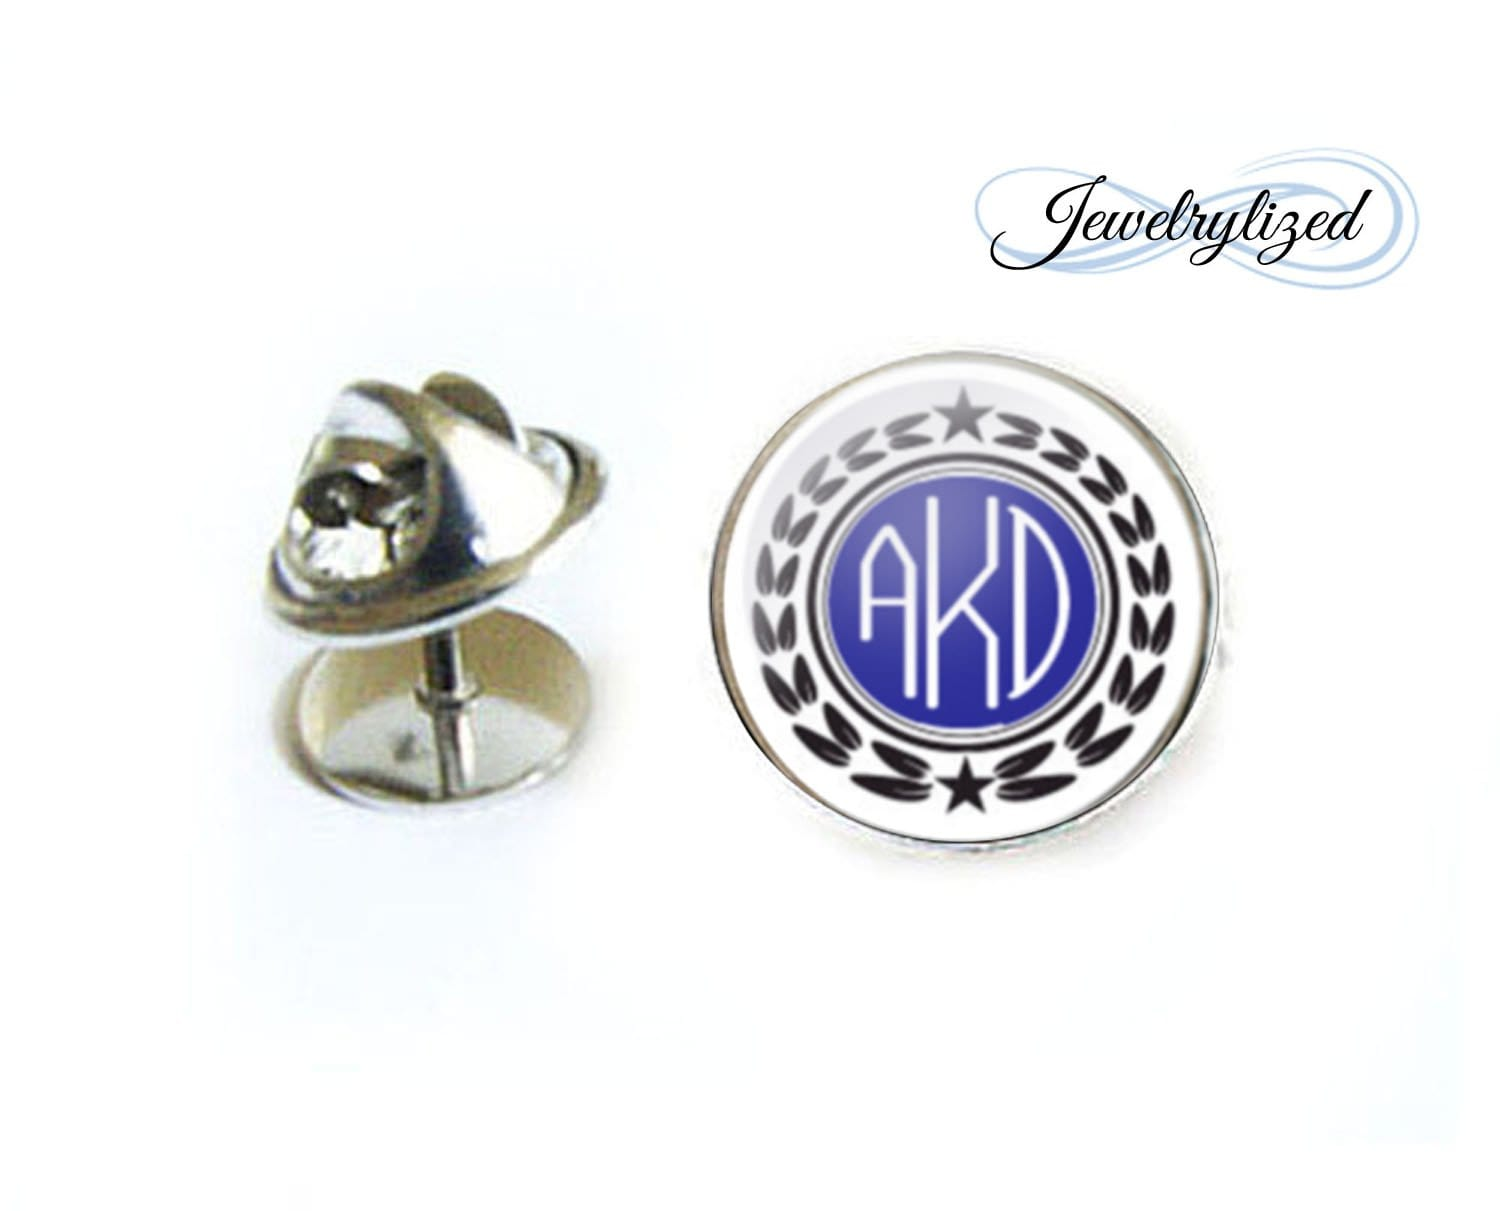 Personalized Blue Military Monogram Tie Tack Pin - Jewelrylized.com